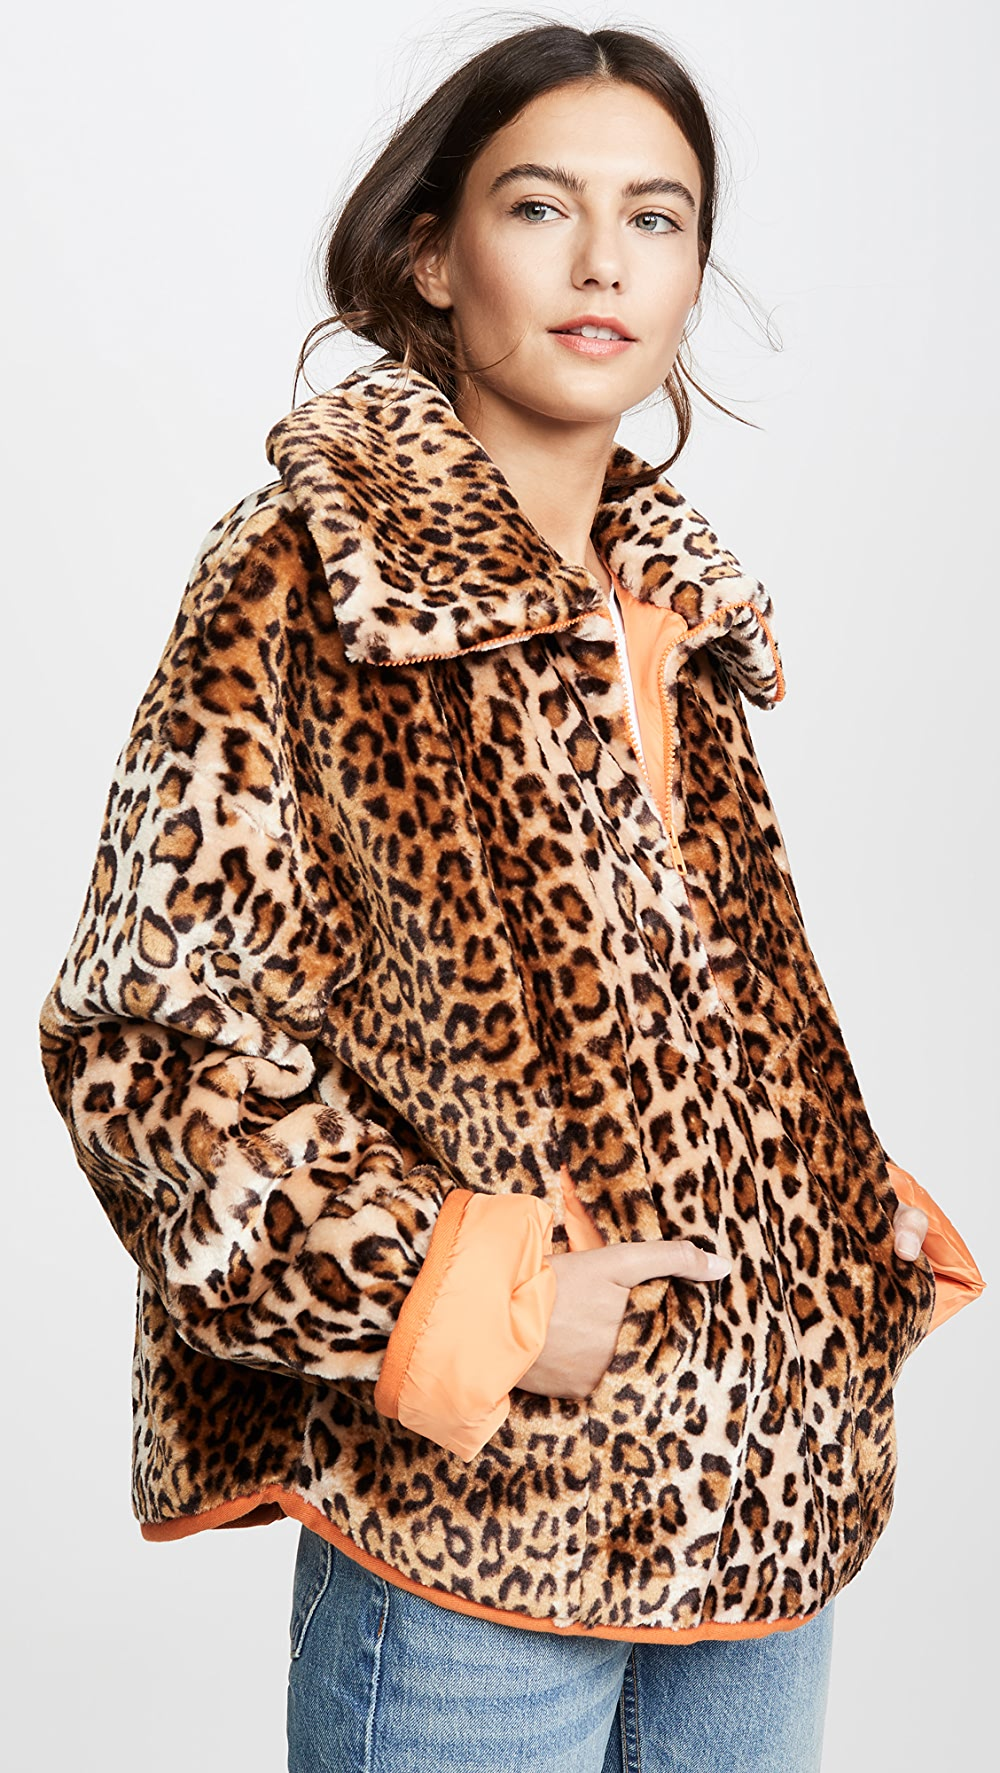 Amicable J.o.a. - Leopard Half Zip Jacket In Many Styles